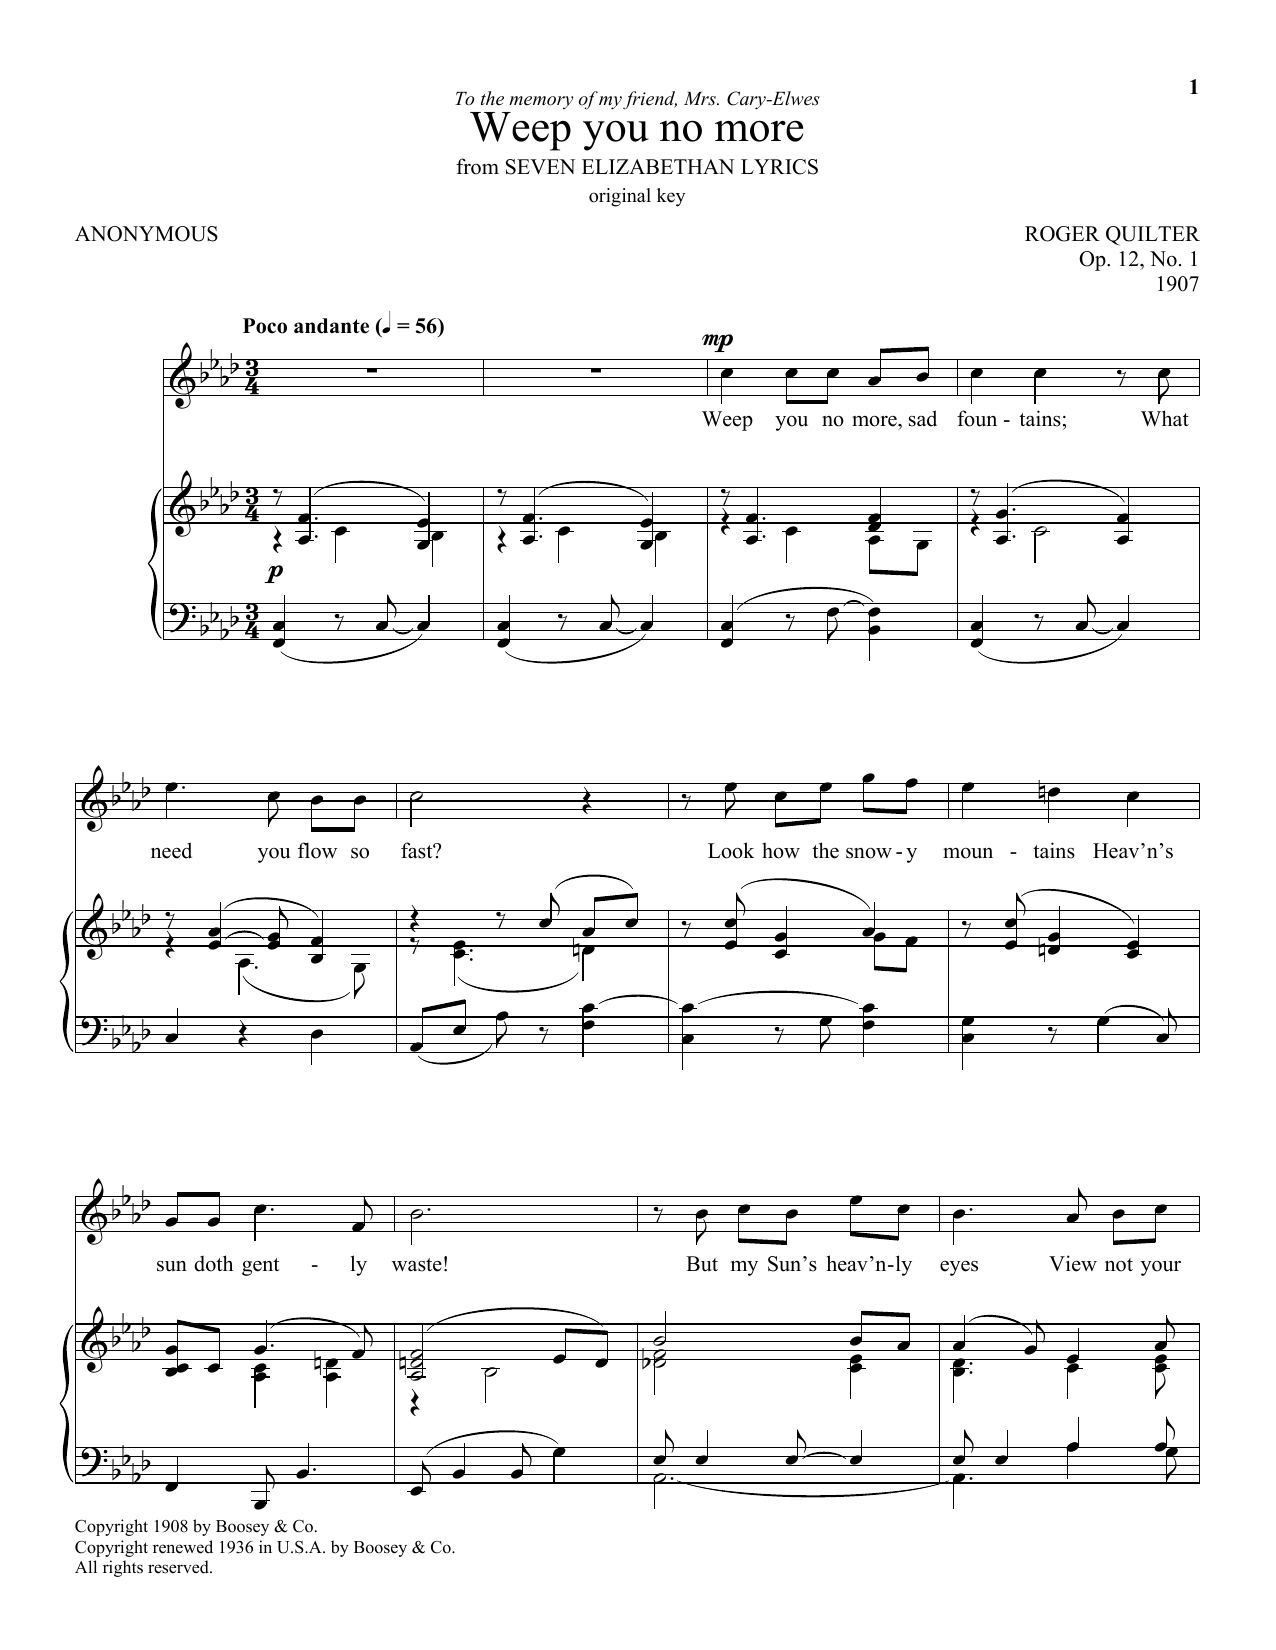 Roger Quilter Weep You No More sheet music preview music notes and score for Piano, Vocal & Guitar (Right-Hand Melody) including 3 page(s)